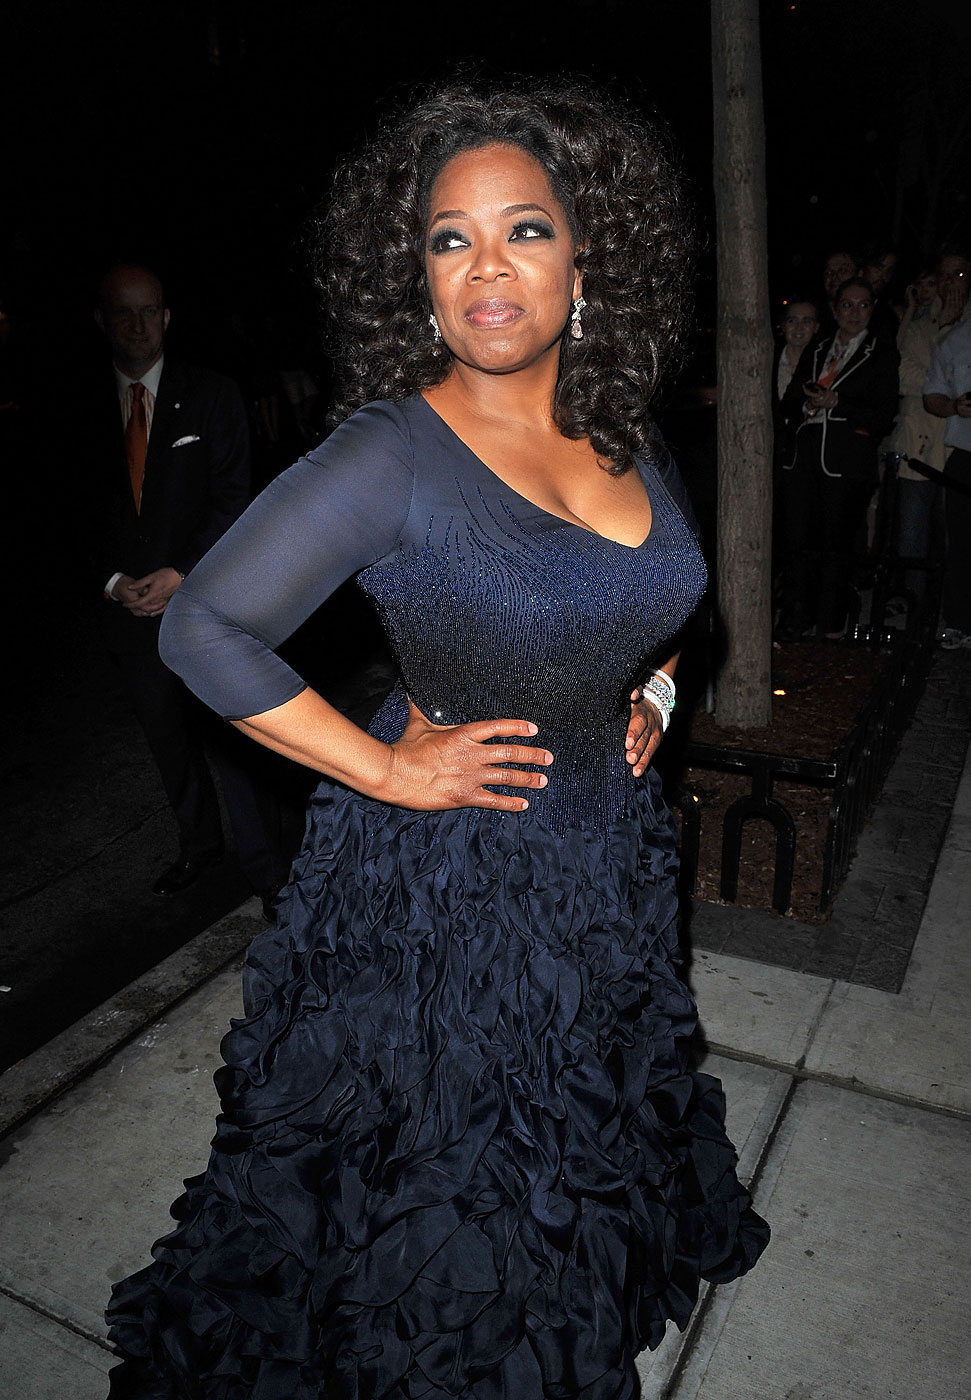 Oprah Winfrey wears Oscar de la Renta  to the Metropolitan Museum of Art's Costume Institute Gala after party at the Mark Hotel on May 3, 2010 in New York City.